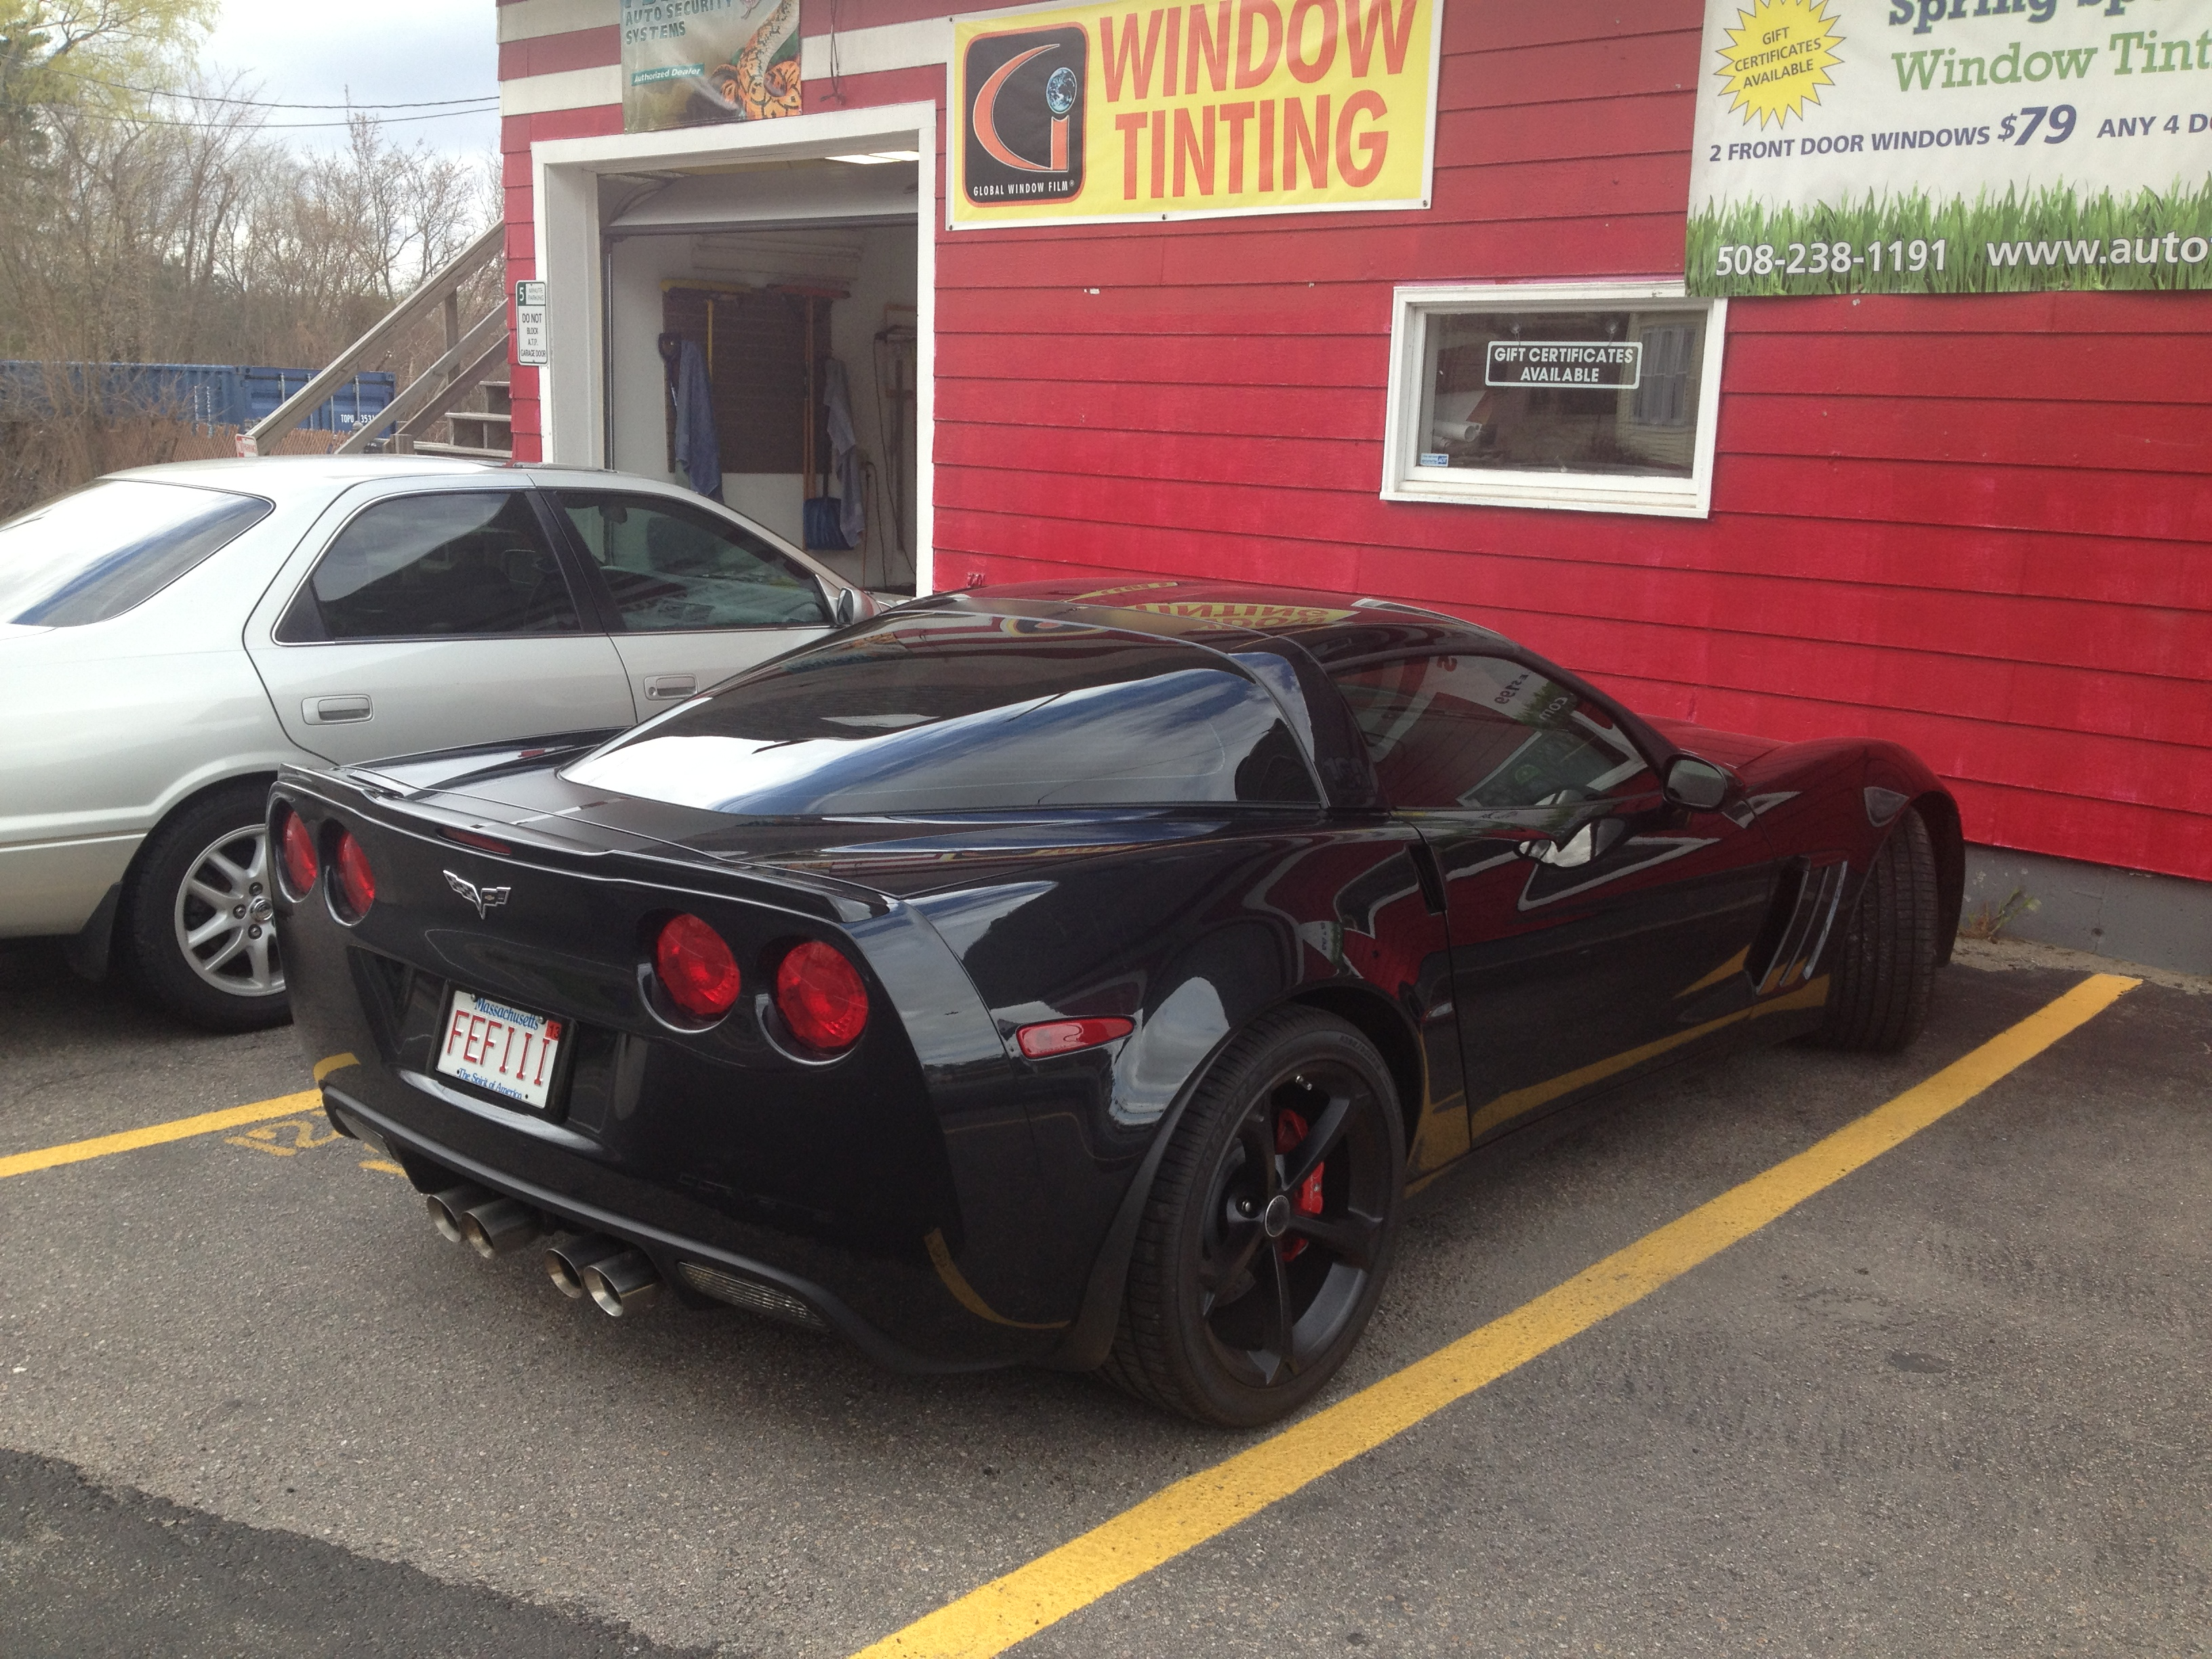 corvette 100th anniversary ATP tint of the day.JPG